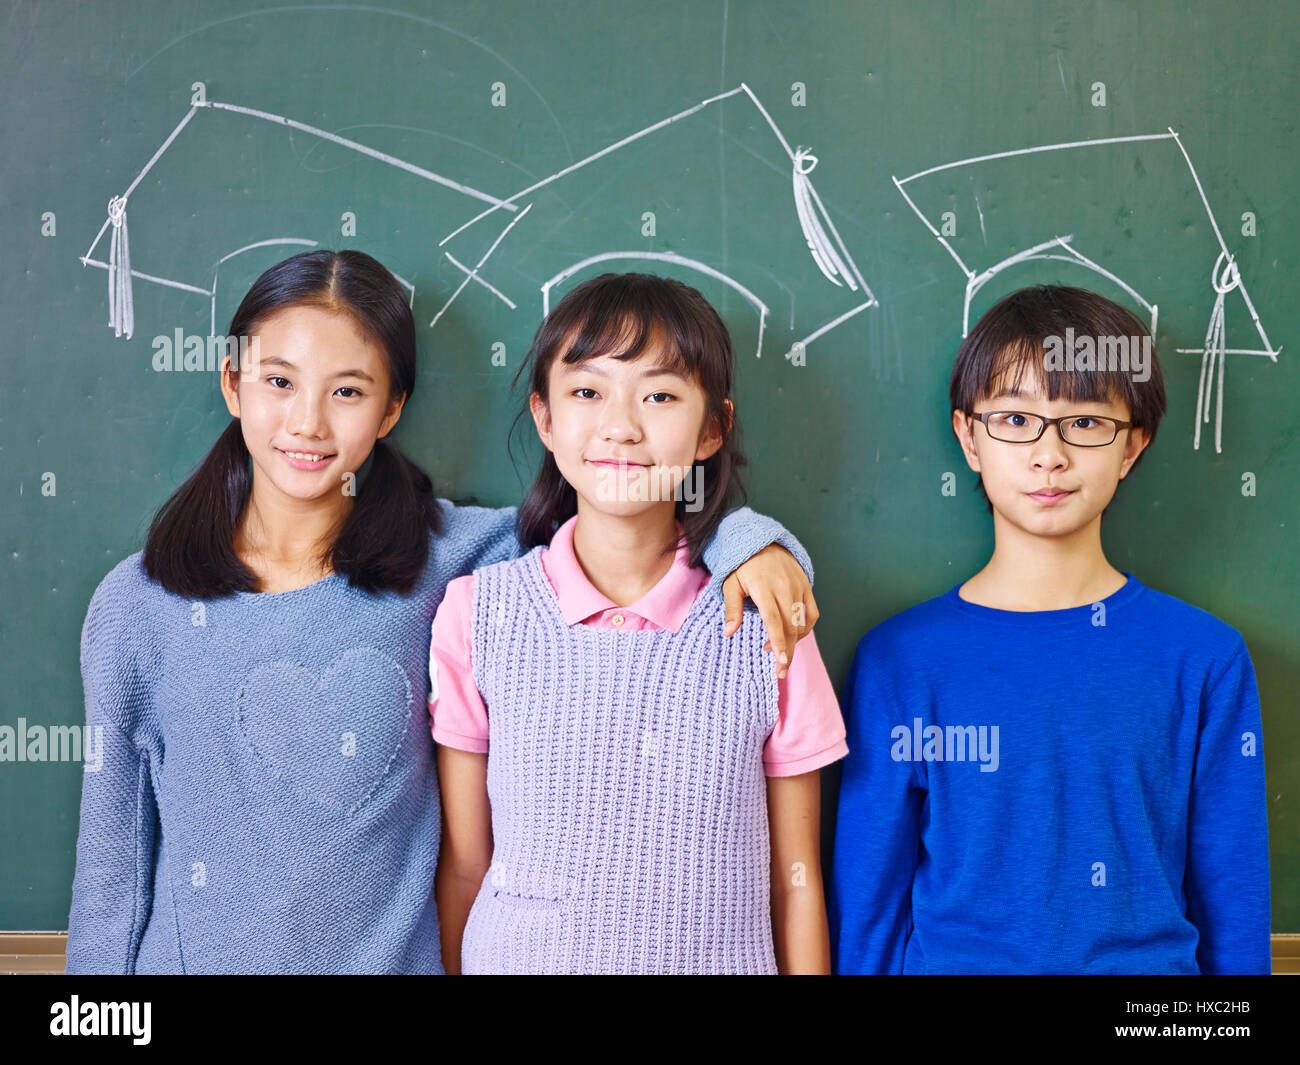 three asian elementary school children standing in front of chalkboard underneath chalk-drawn doctoral caps. - Stock Image